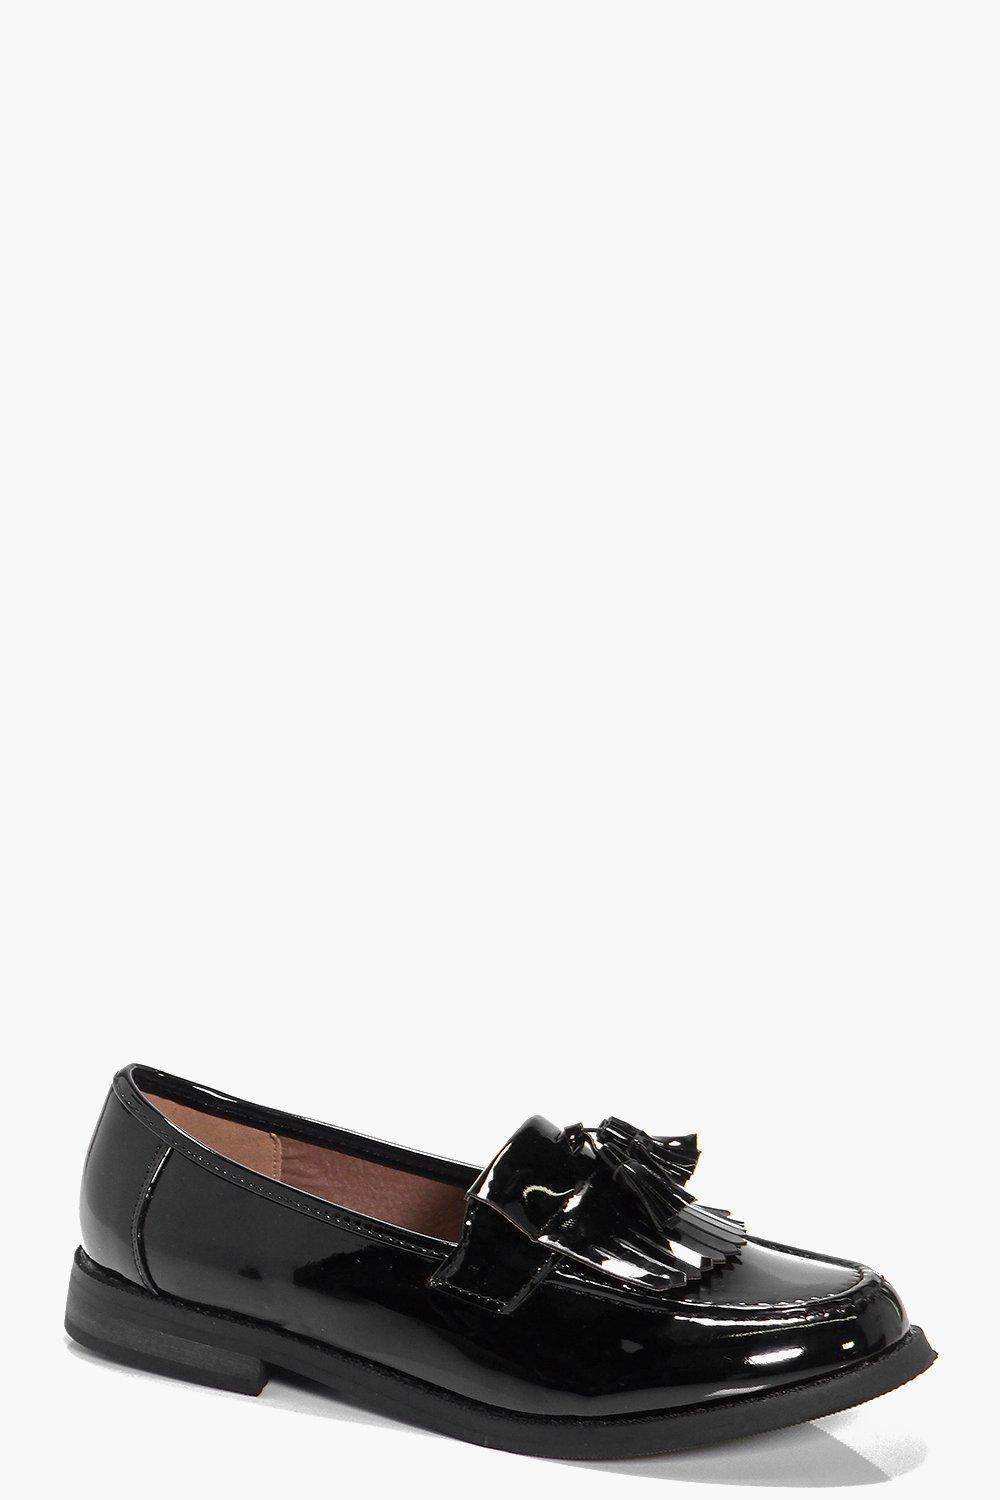 Mya Fringe Trim Loafer